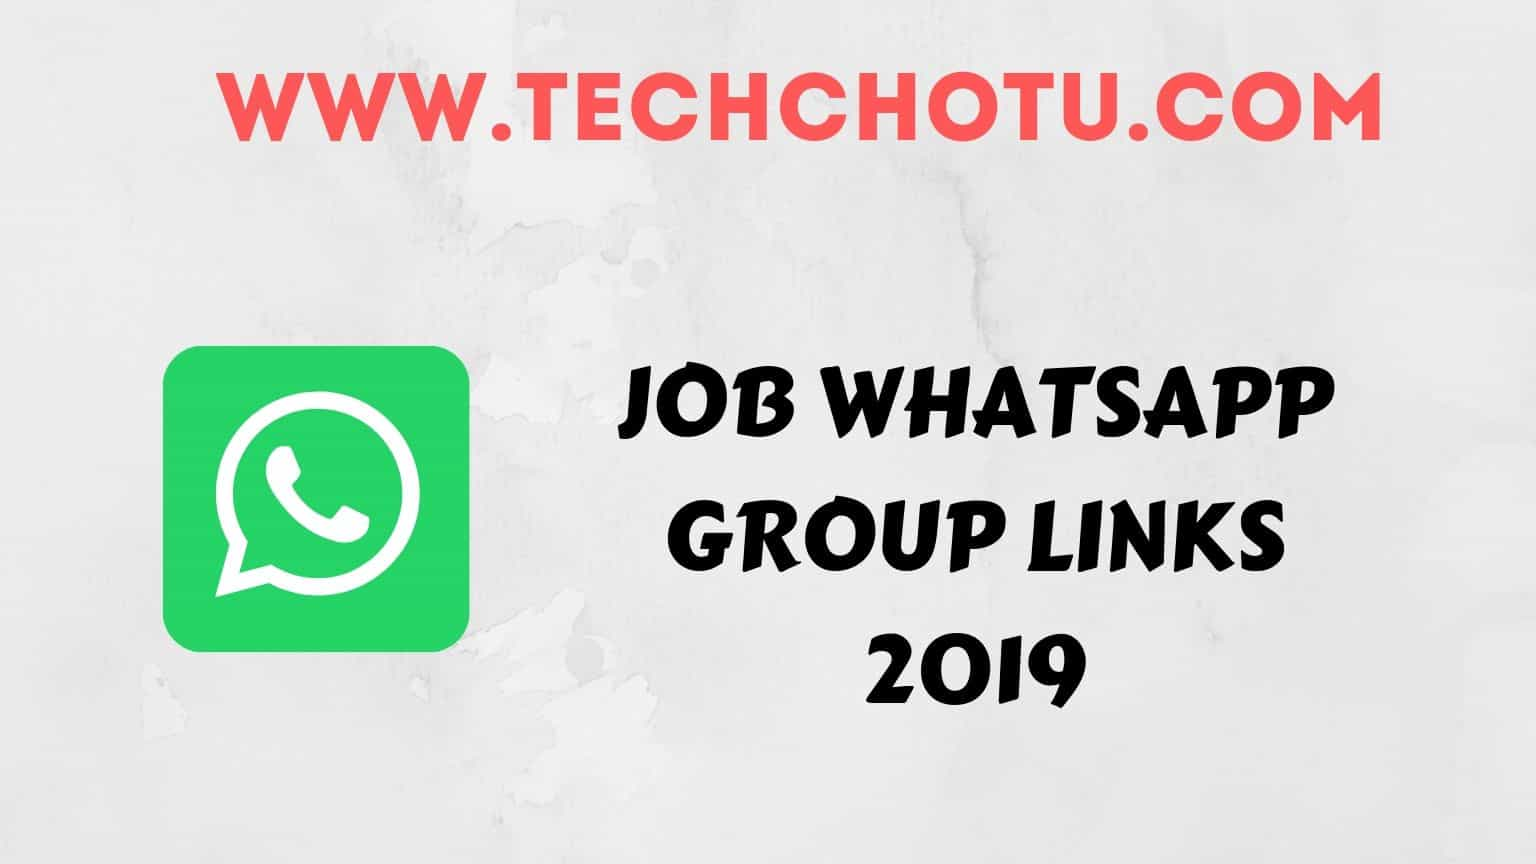 JOBS WHATSAPP GROUP LINKS 2019 - TECHCHOTU 2019